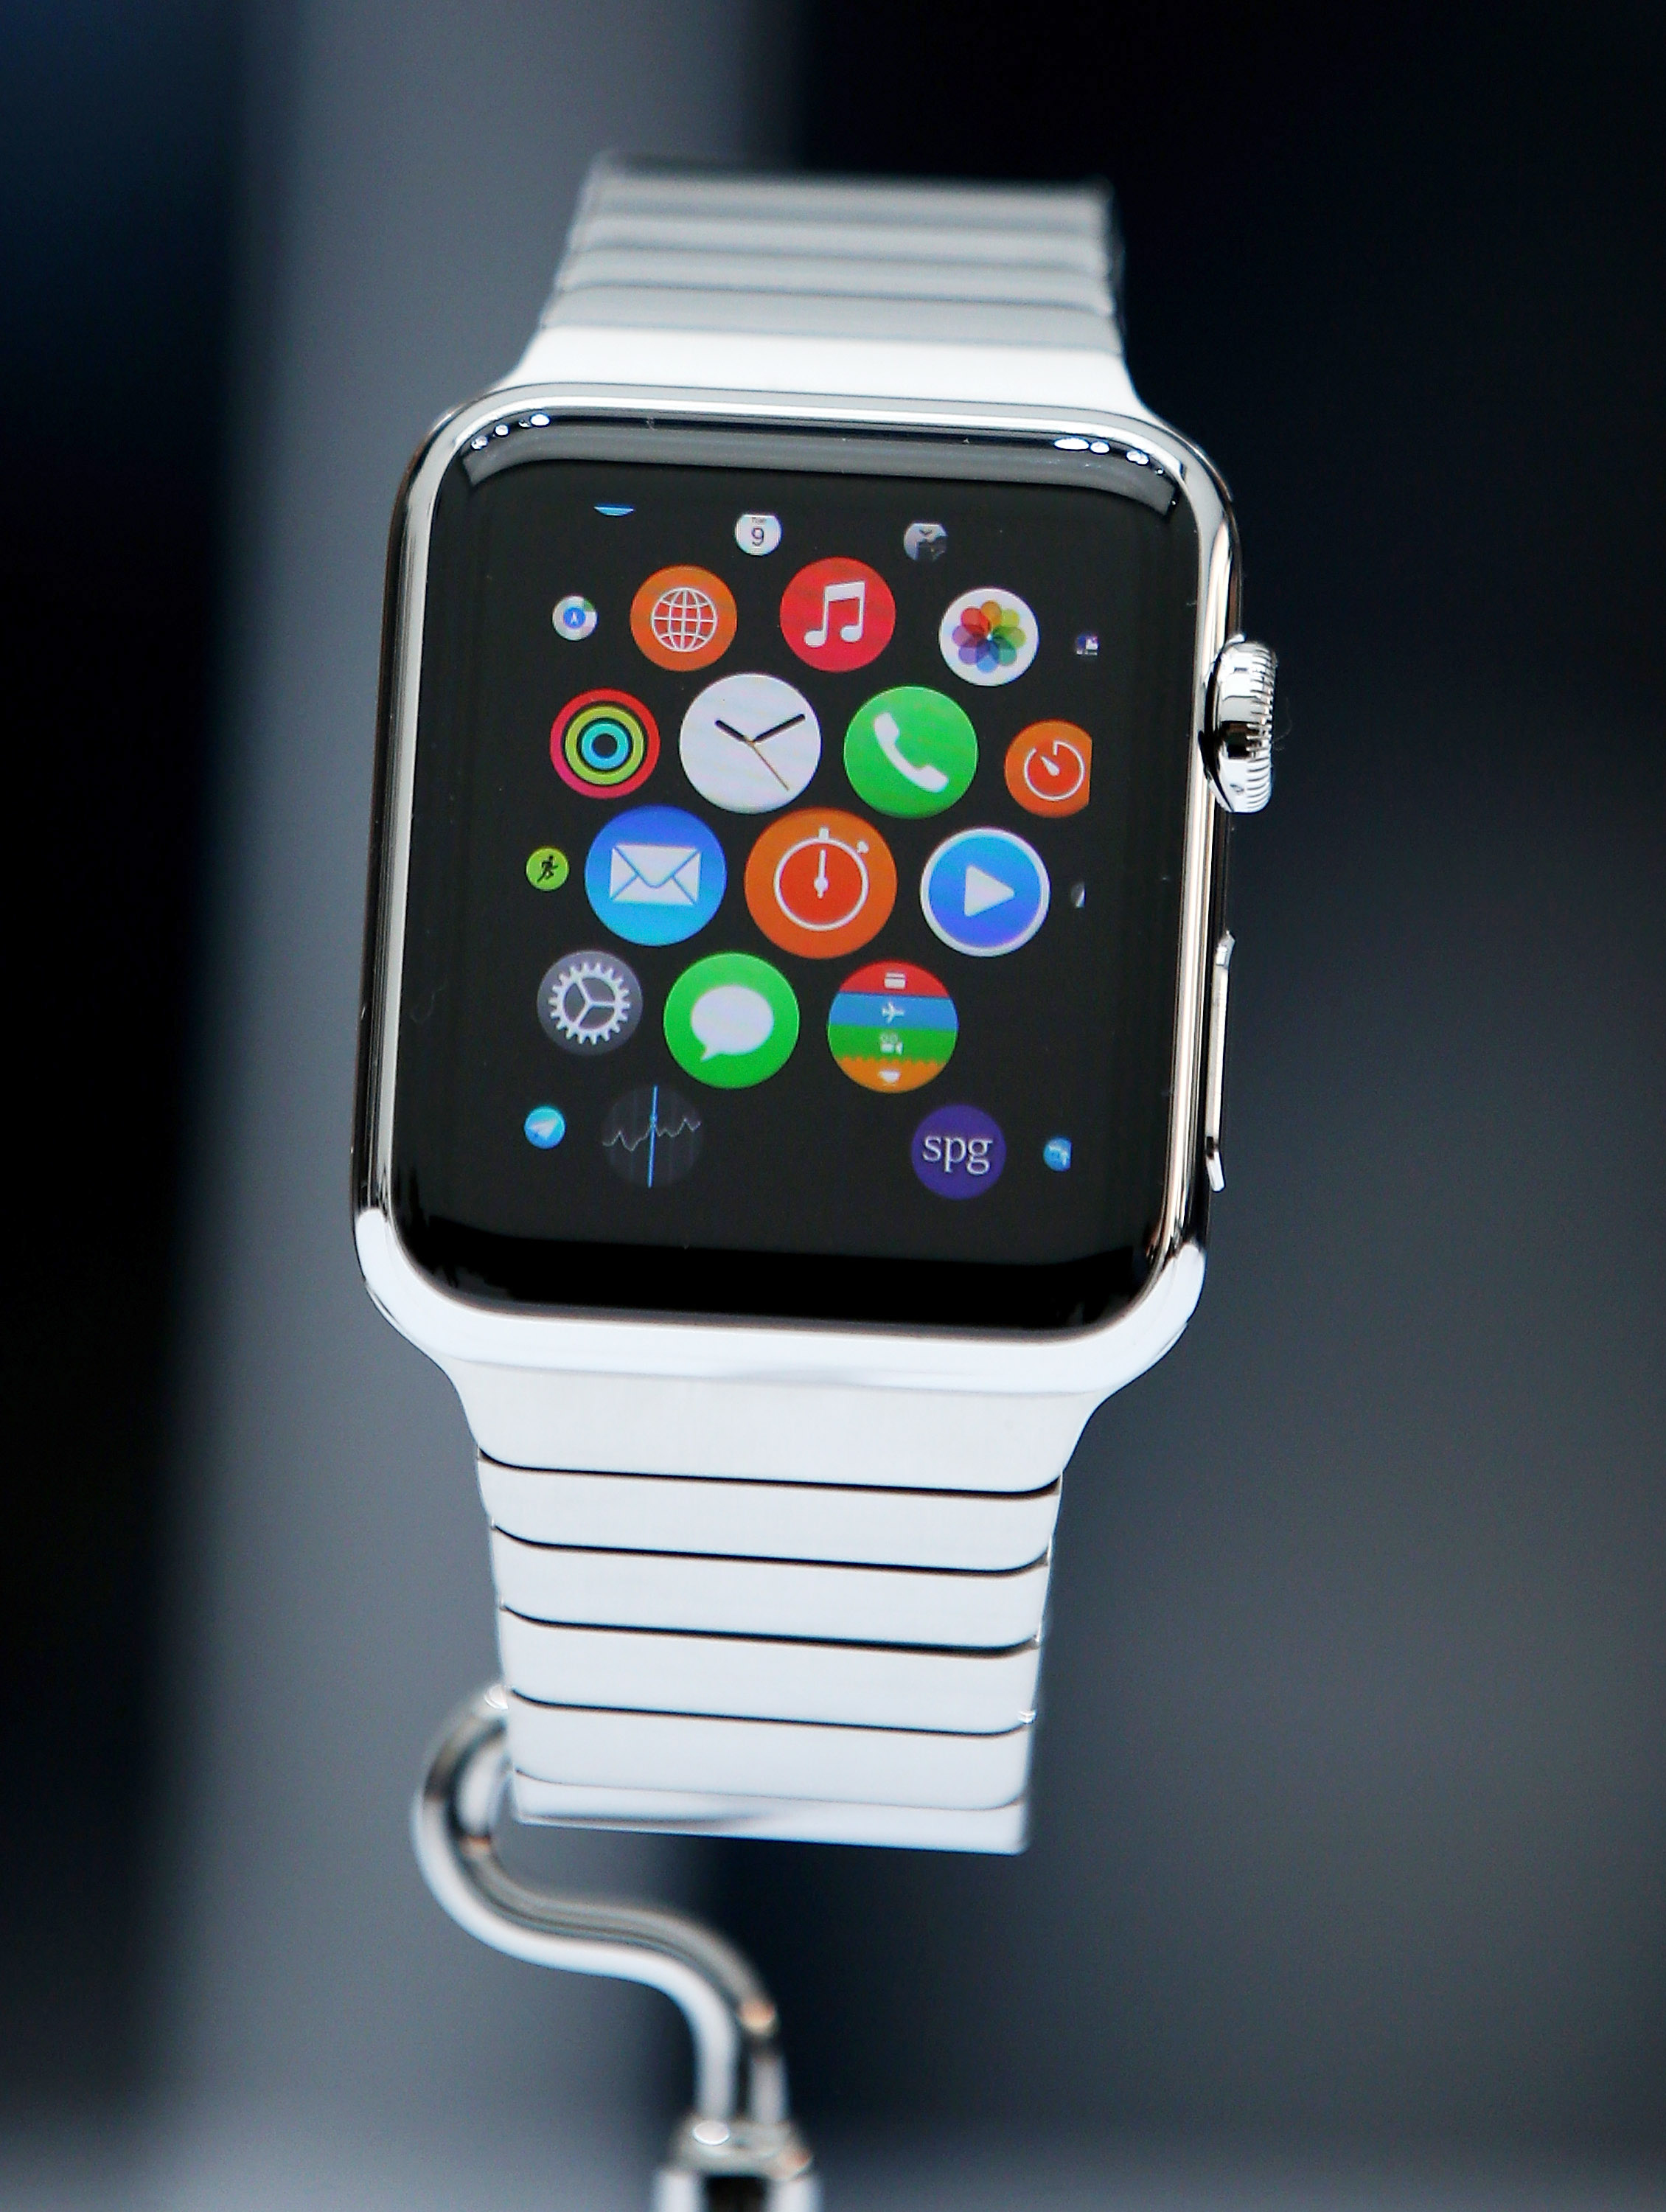 The new Apple Watch is displayed during an Apple special event at the Flint Center for the Performing Arts on September 9, 2014 in Cupertino, California.